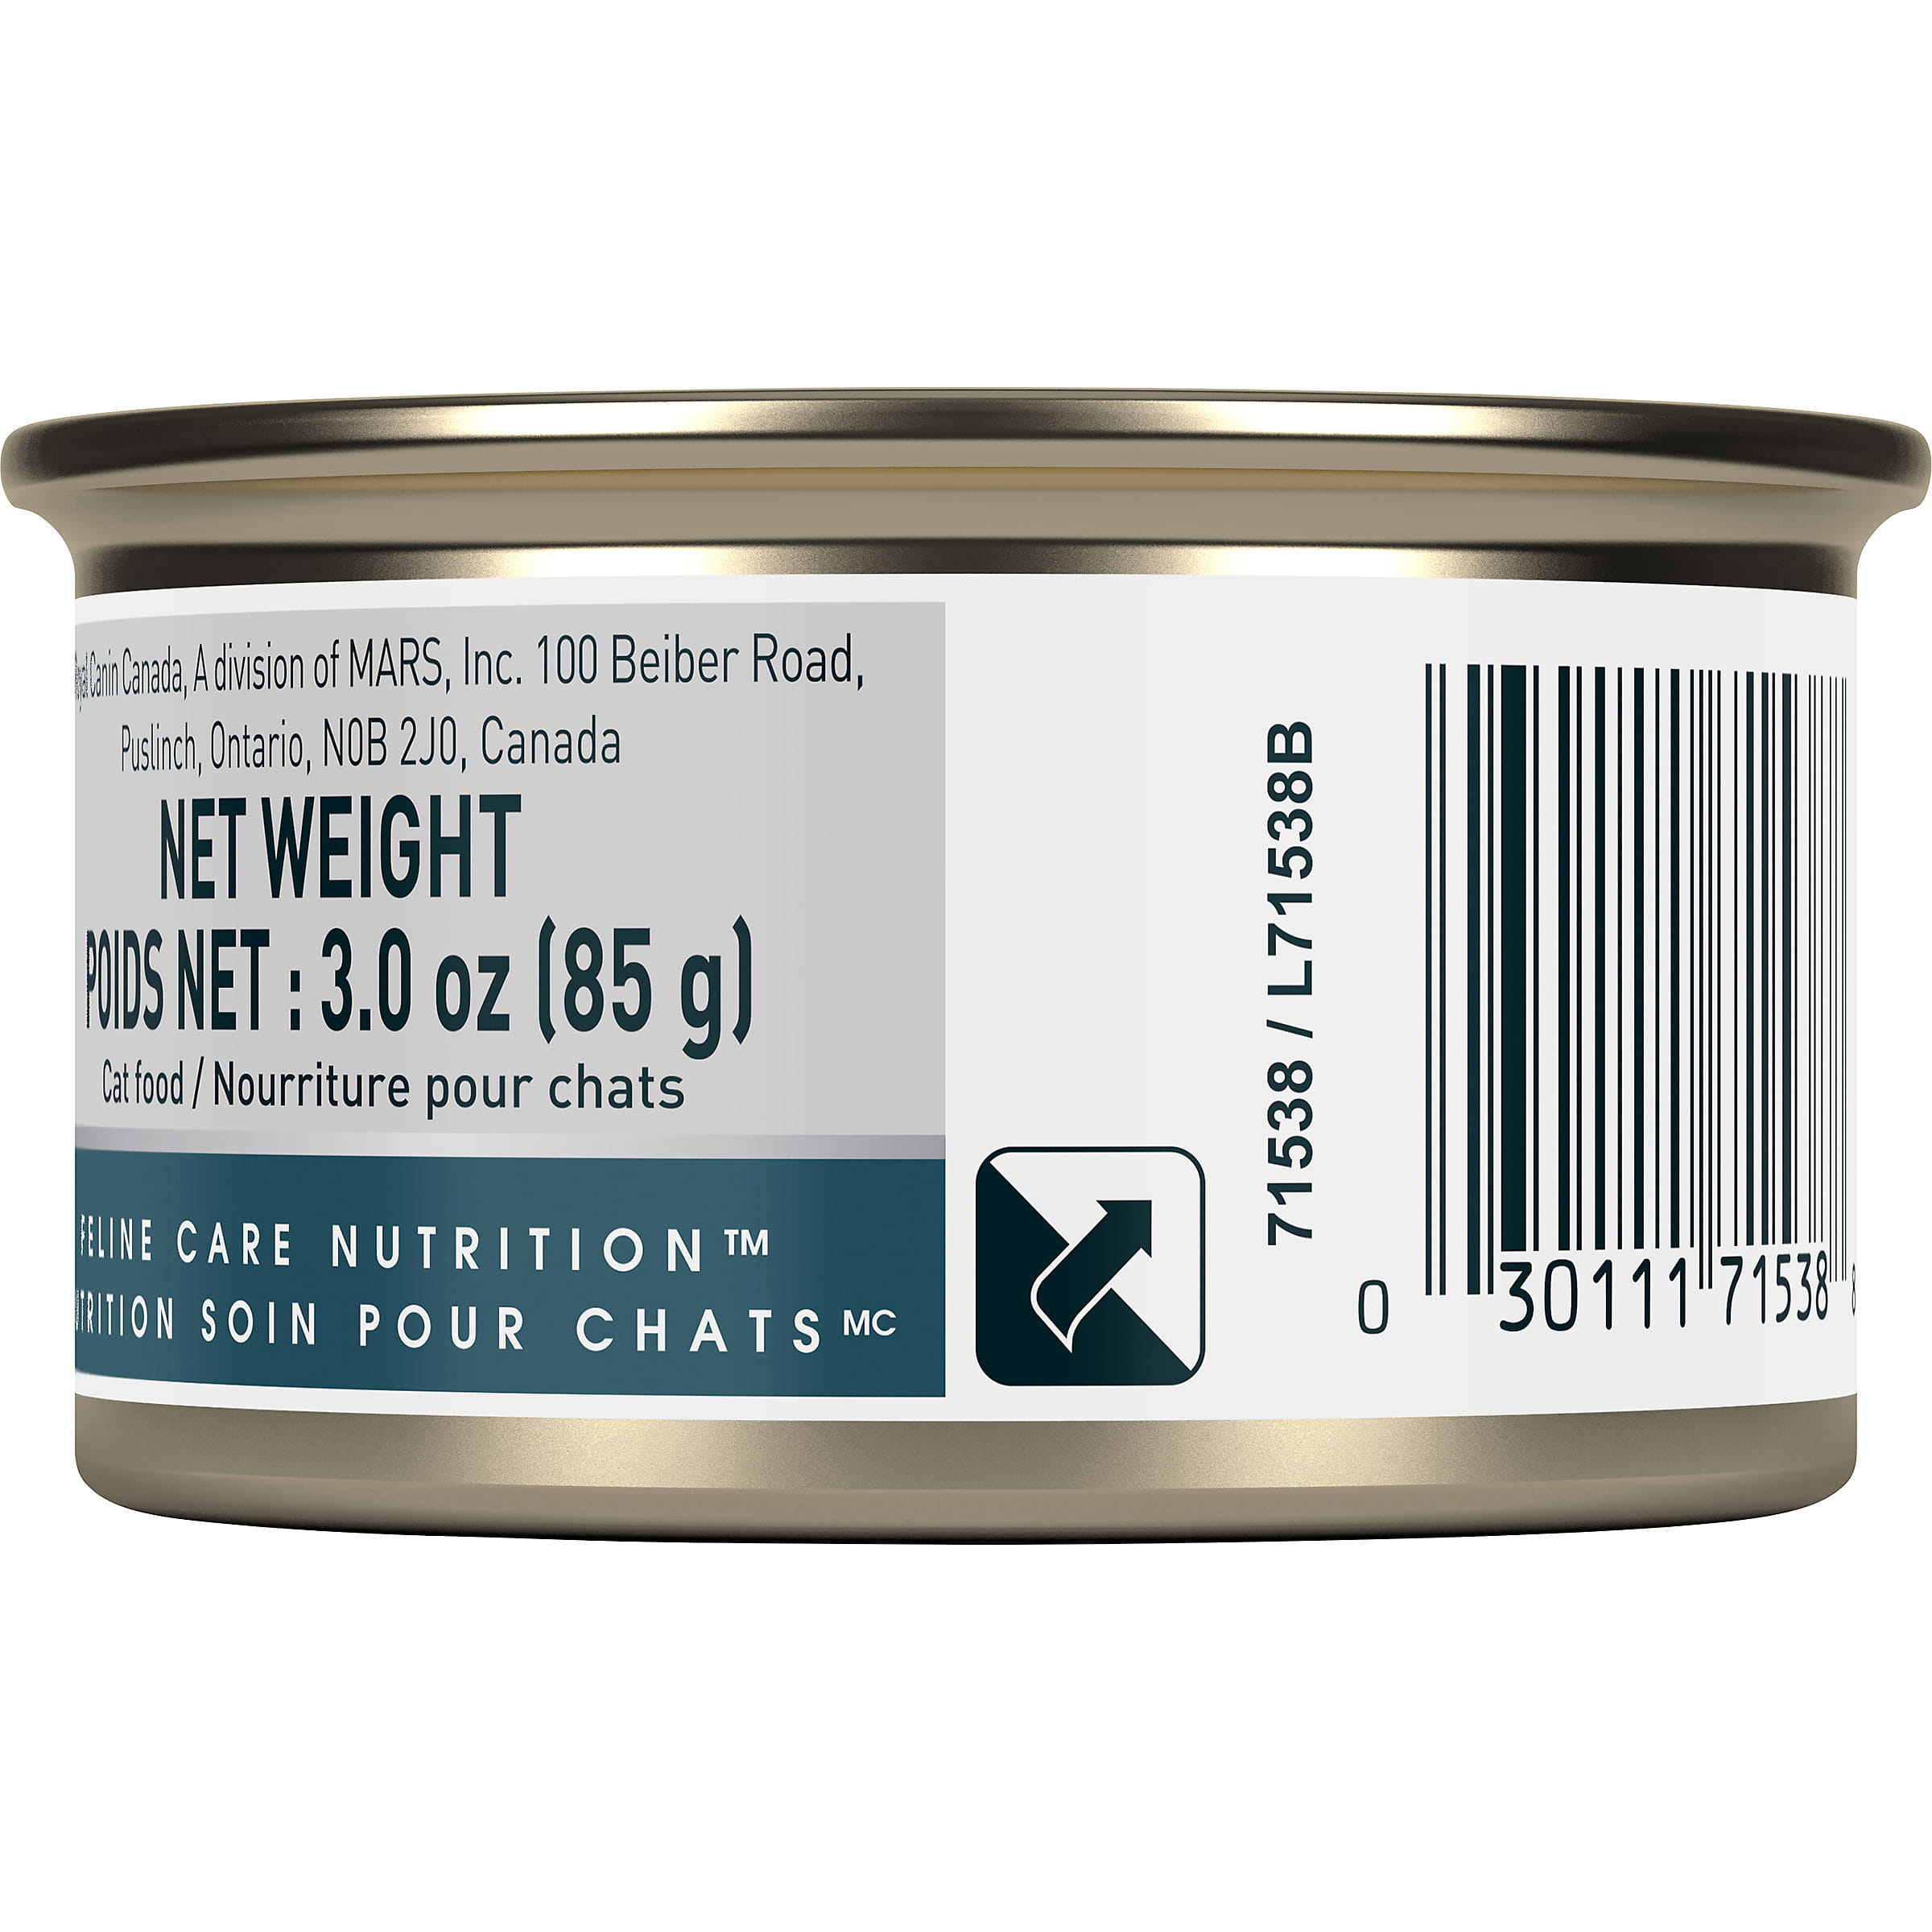 Ultra Light Thin Slices In Gravy Canned Cat Food